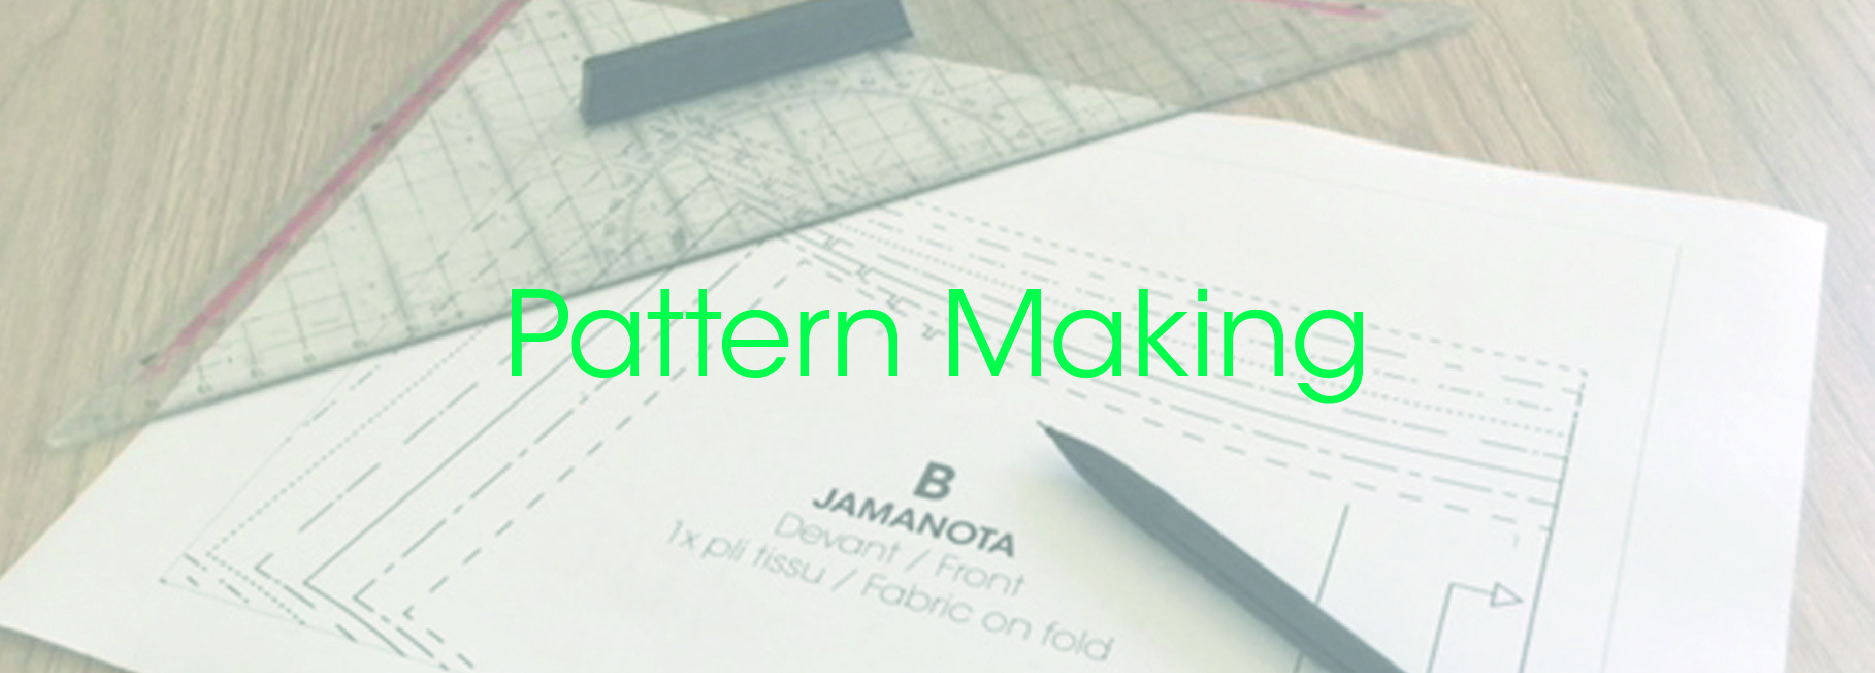 Pattern making - How to modify a sewing pattern